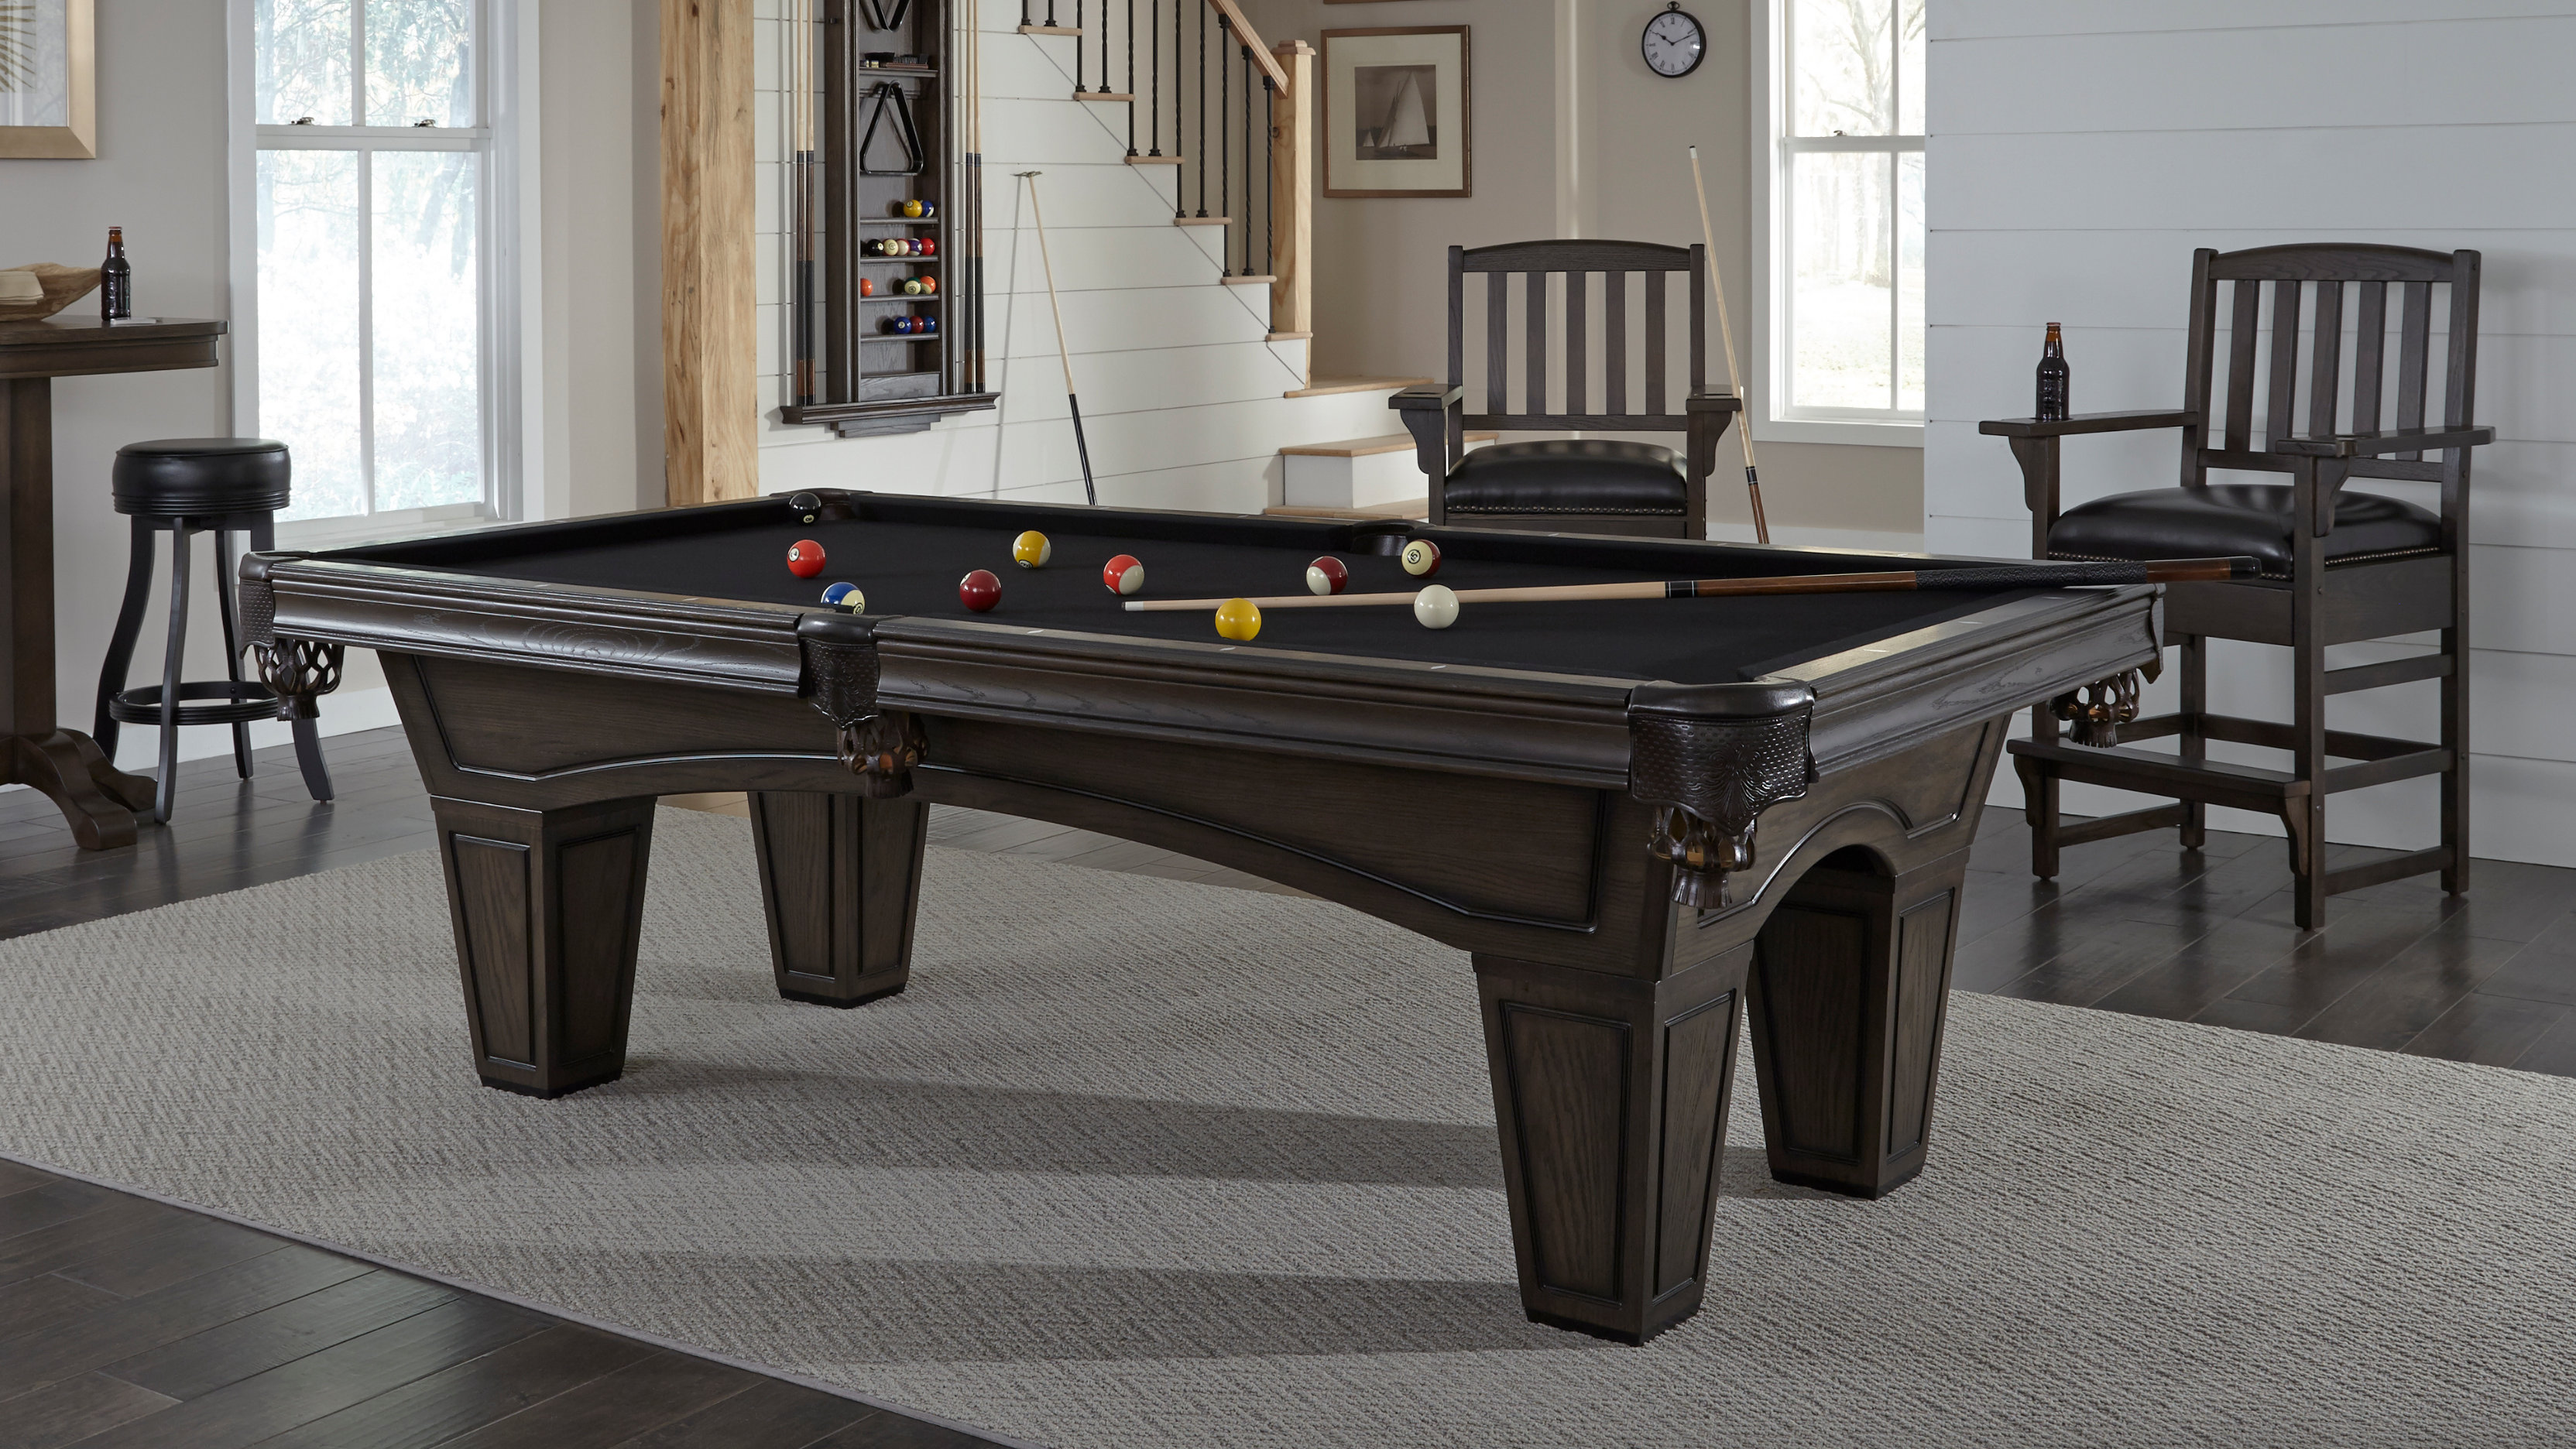 How To Install A Pool Table Slate Installation Home Billiards >> Austin Pool Table American Heritage Bi